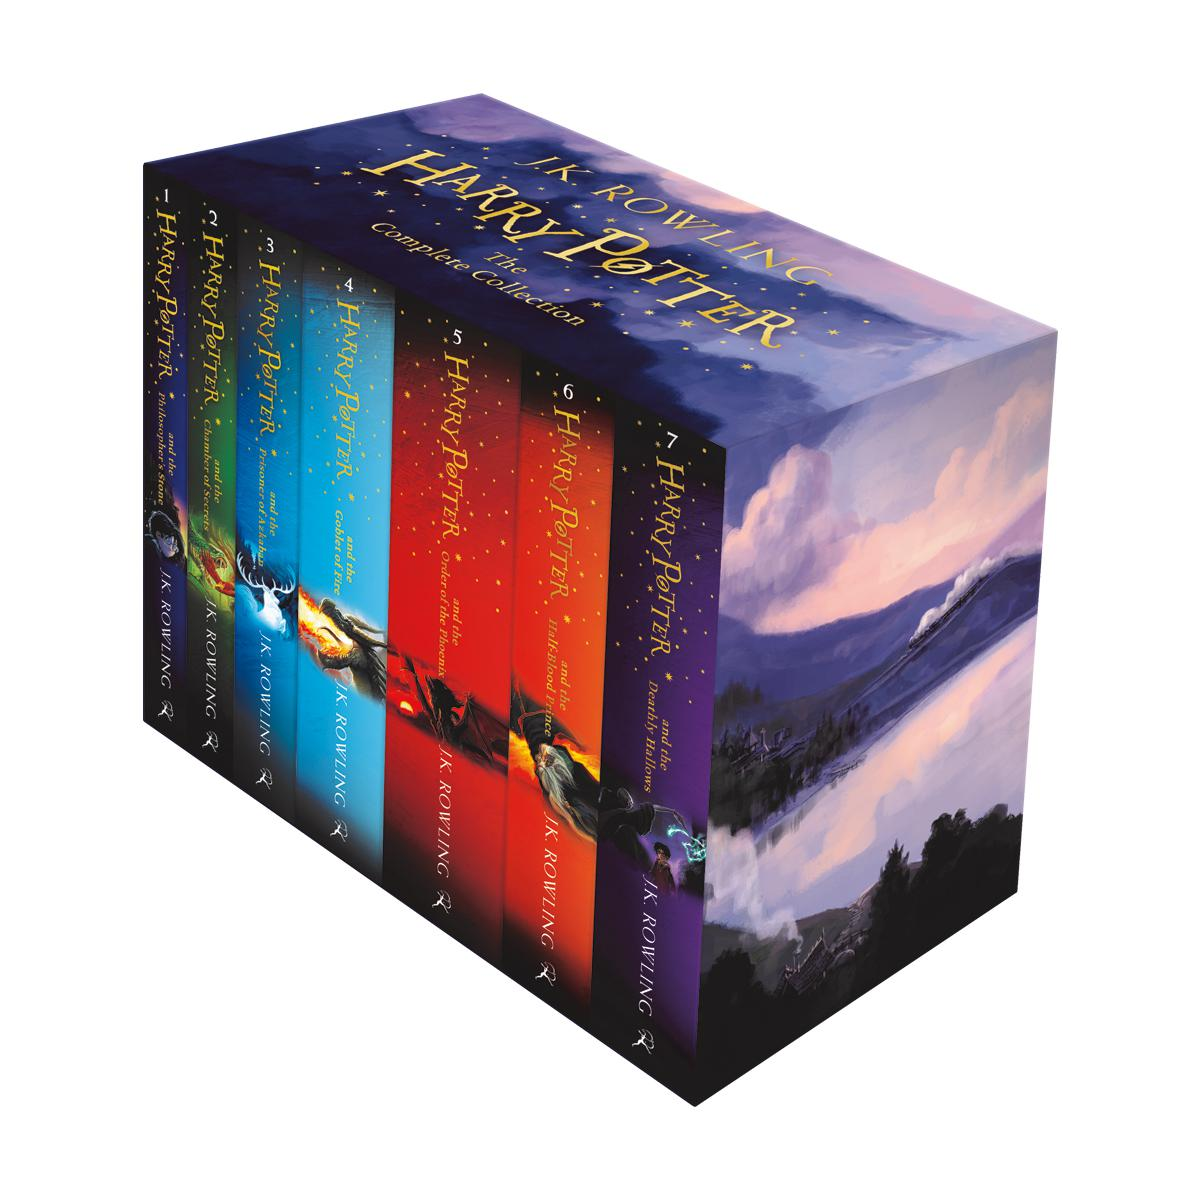 Ensemble de livres Harry Potter